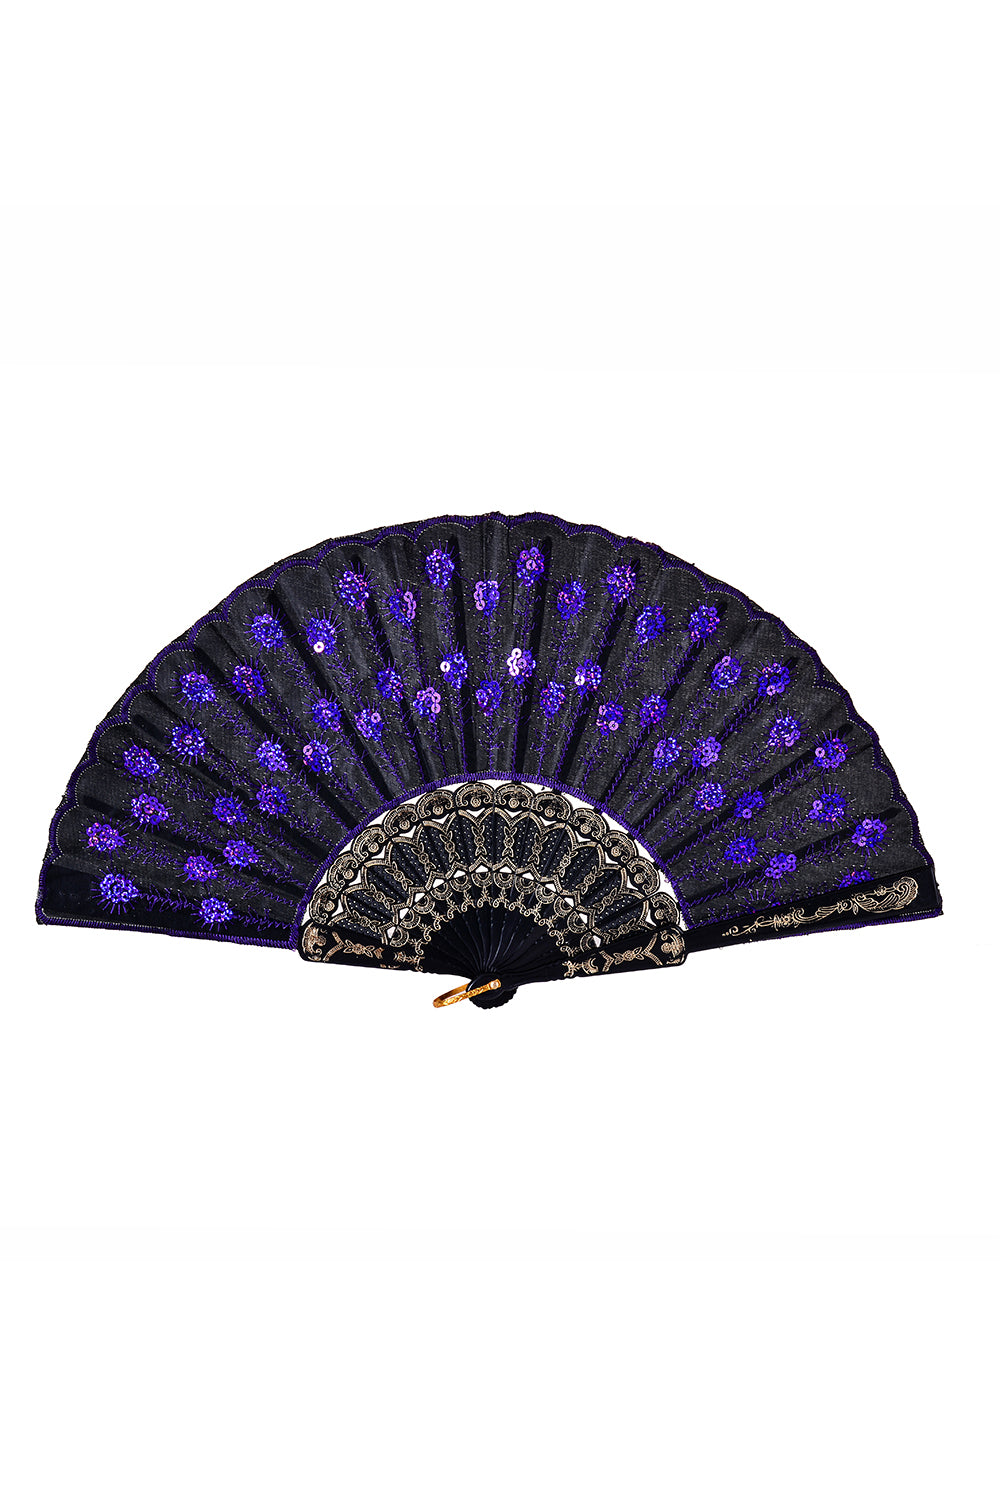 Peacock Sequin Festival Fan - Purple